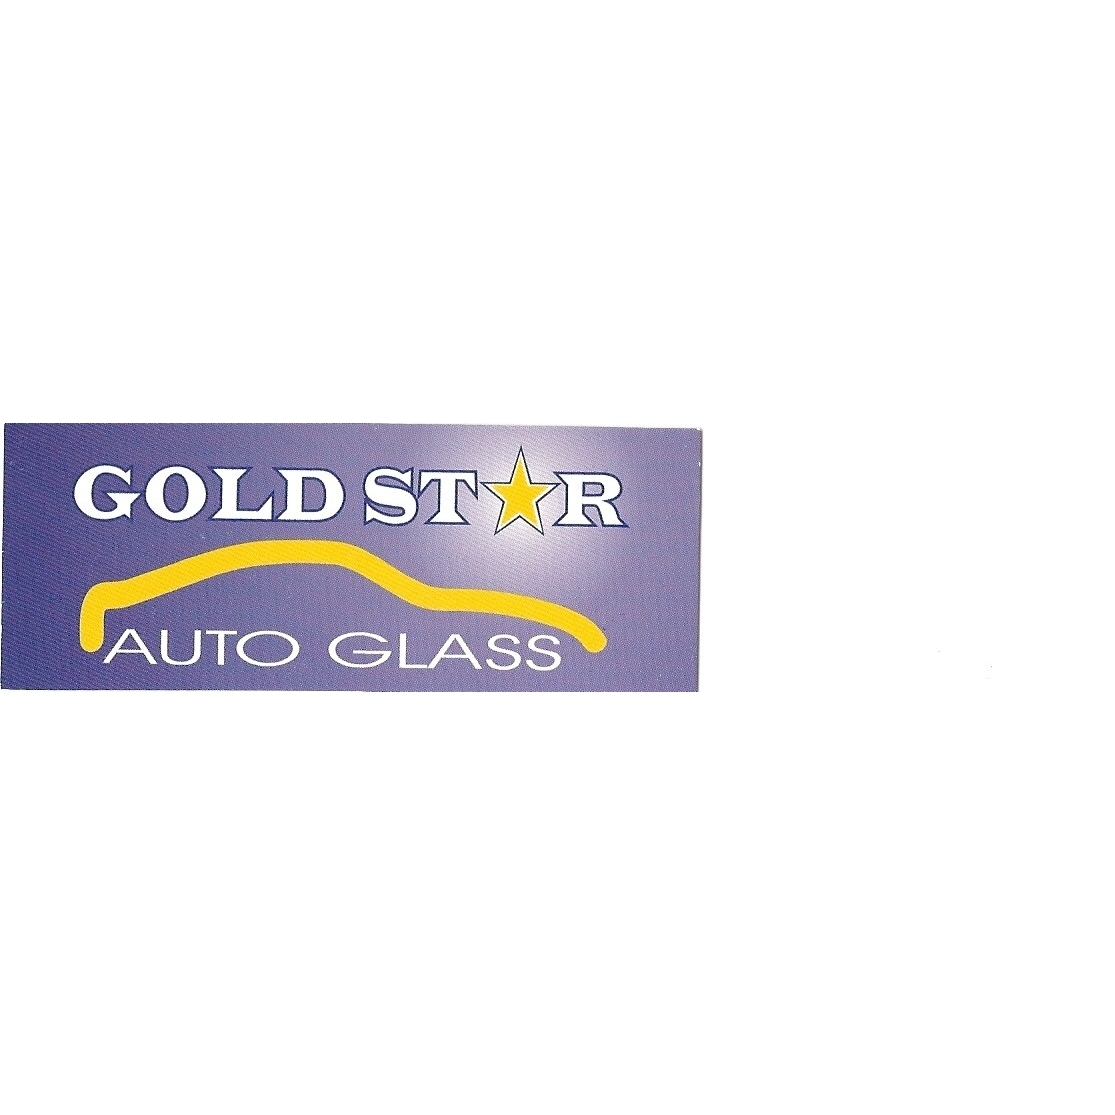 Gold Star Auto Glass - Queen Creek, AZ - Auto Glass & Windshield Repair